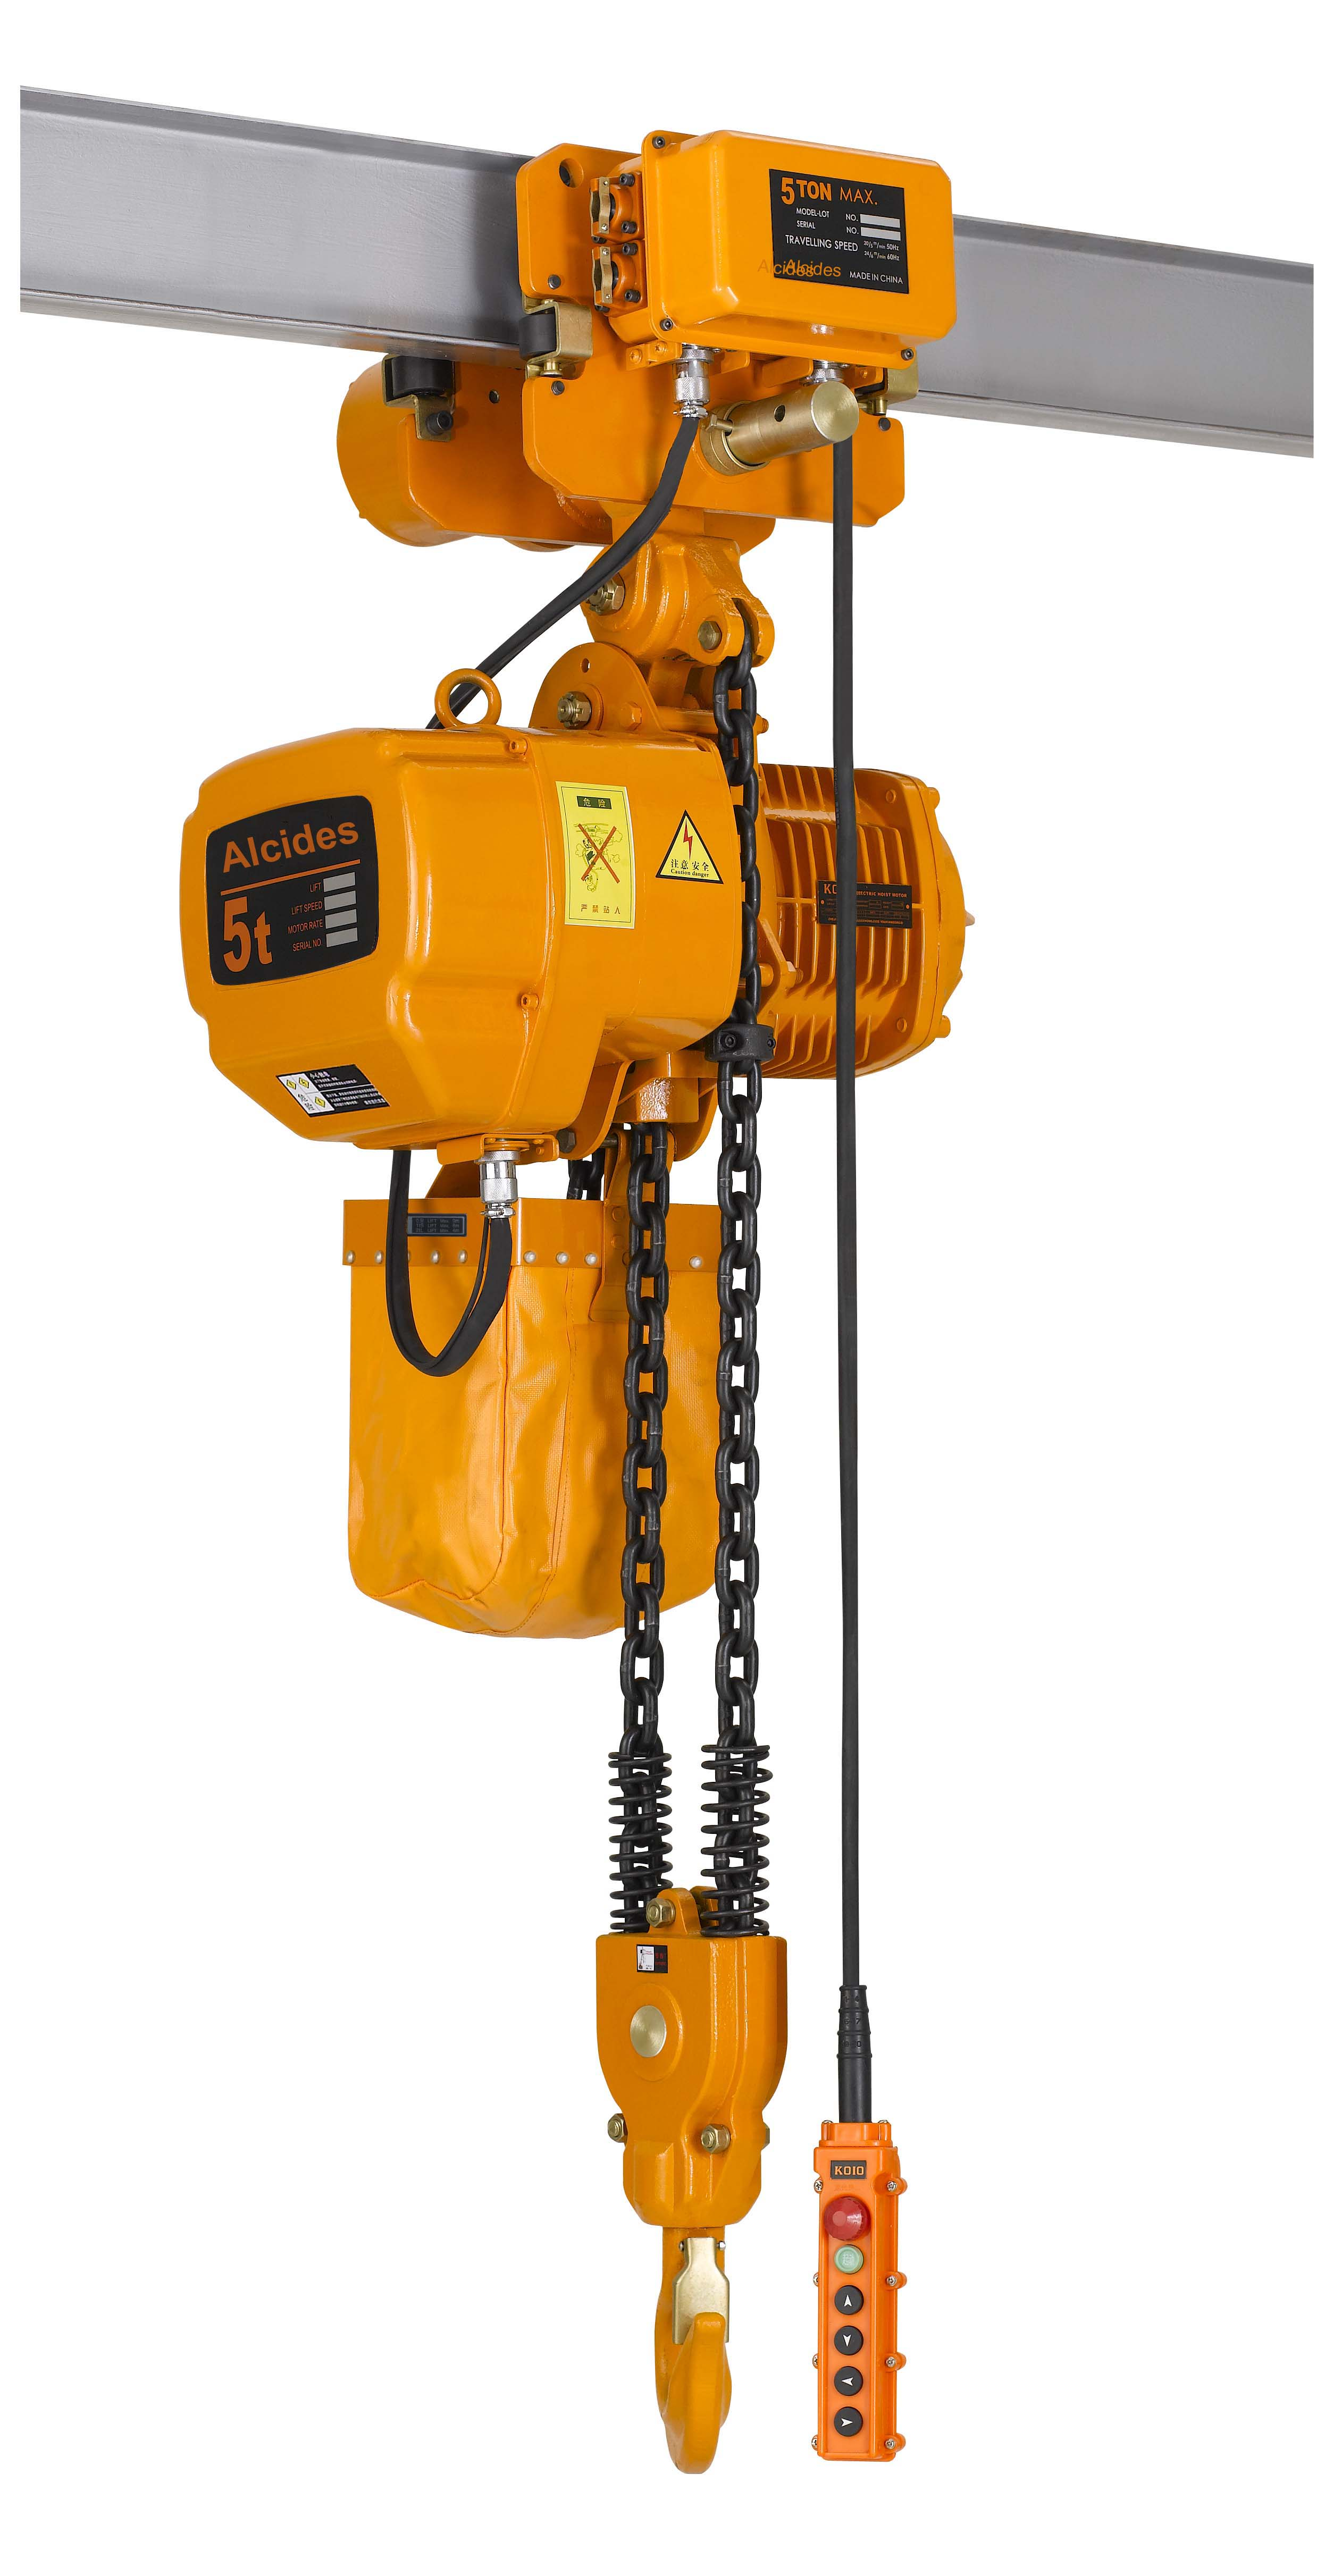 0.5t 1t 2t 2.5t 3t 5t 7.5t 10t 15t 20t 25t Kito Type Electric Chain Hoist with Electric Trolley 1P/3